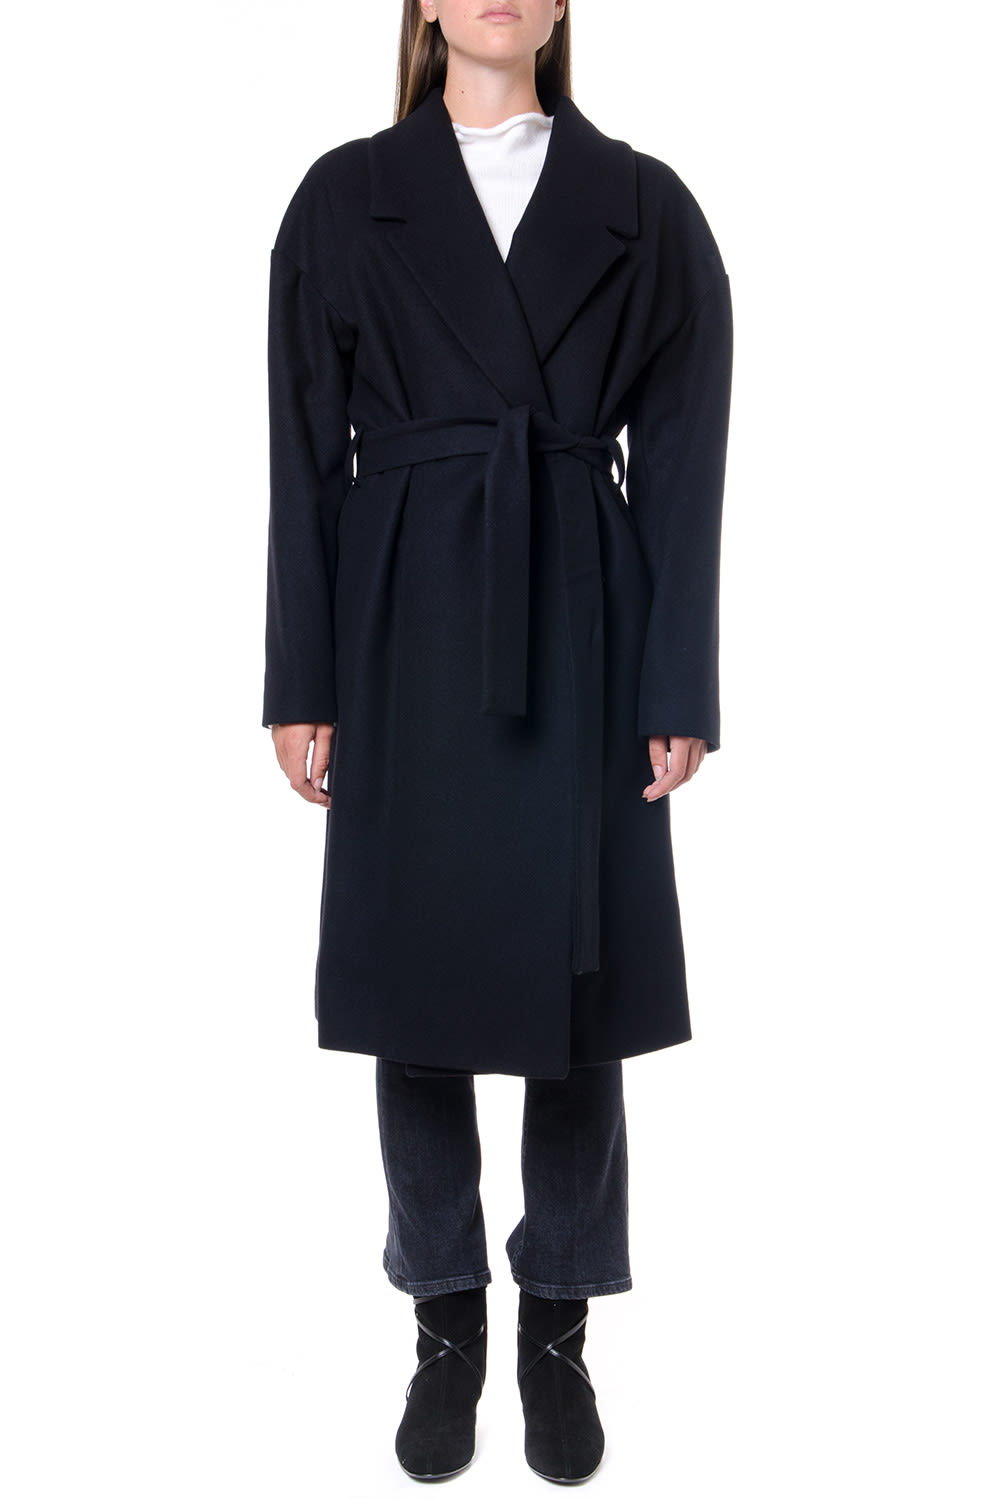 Dondup Wraped Design Black Wool Coat